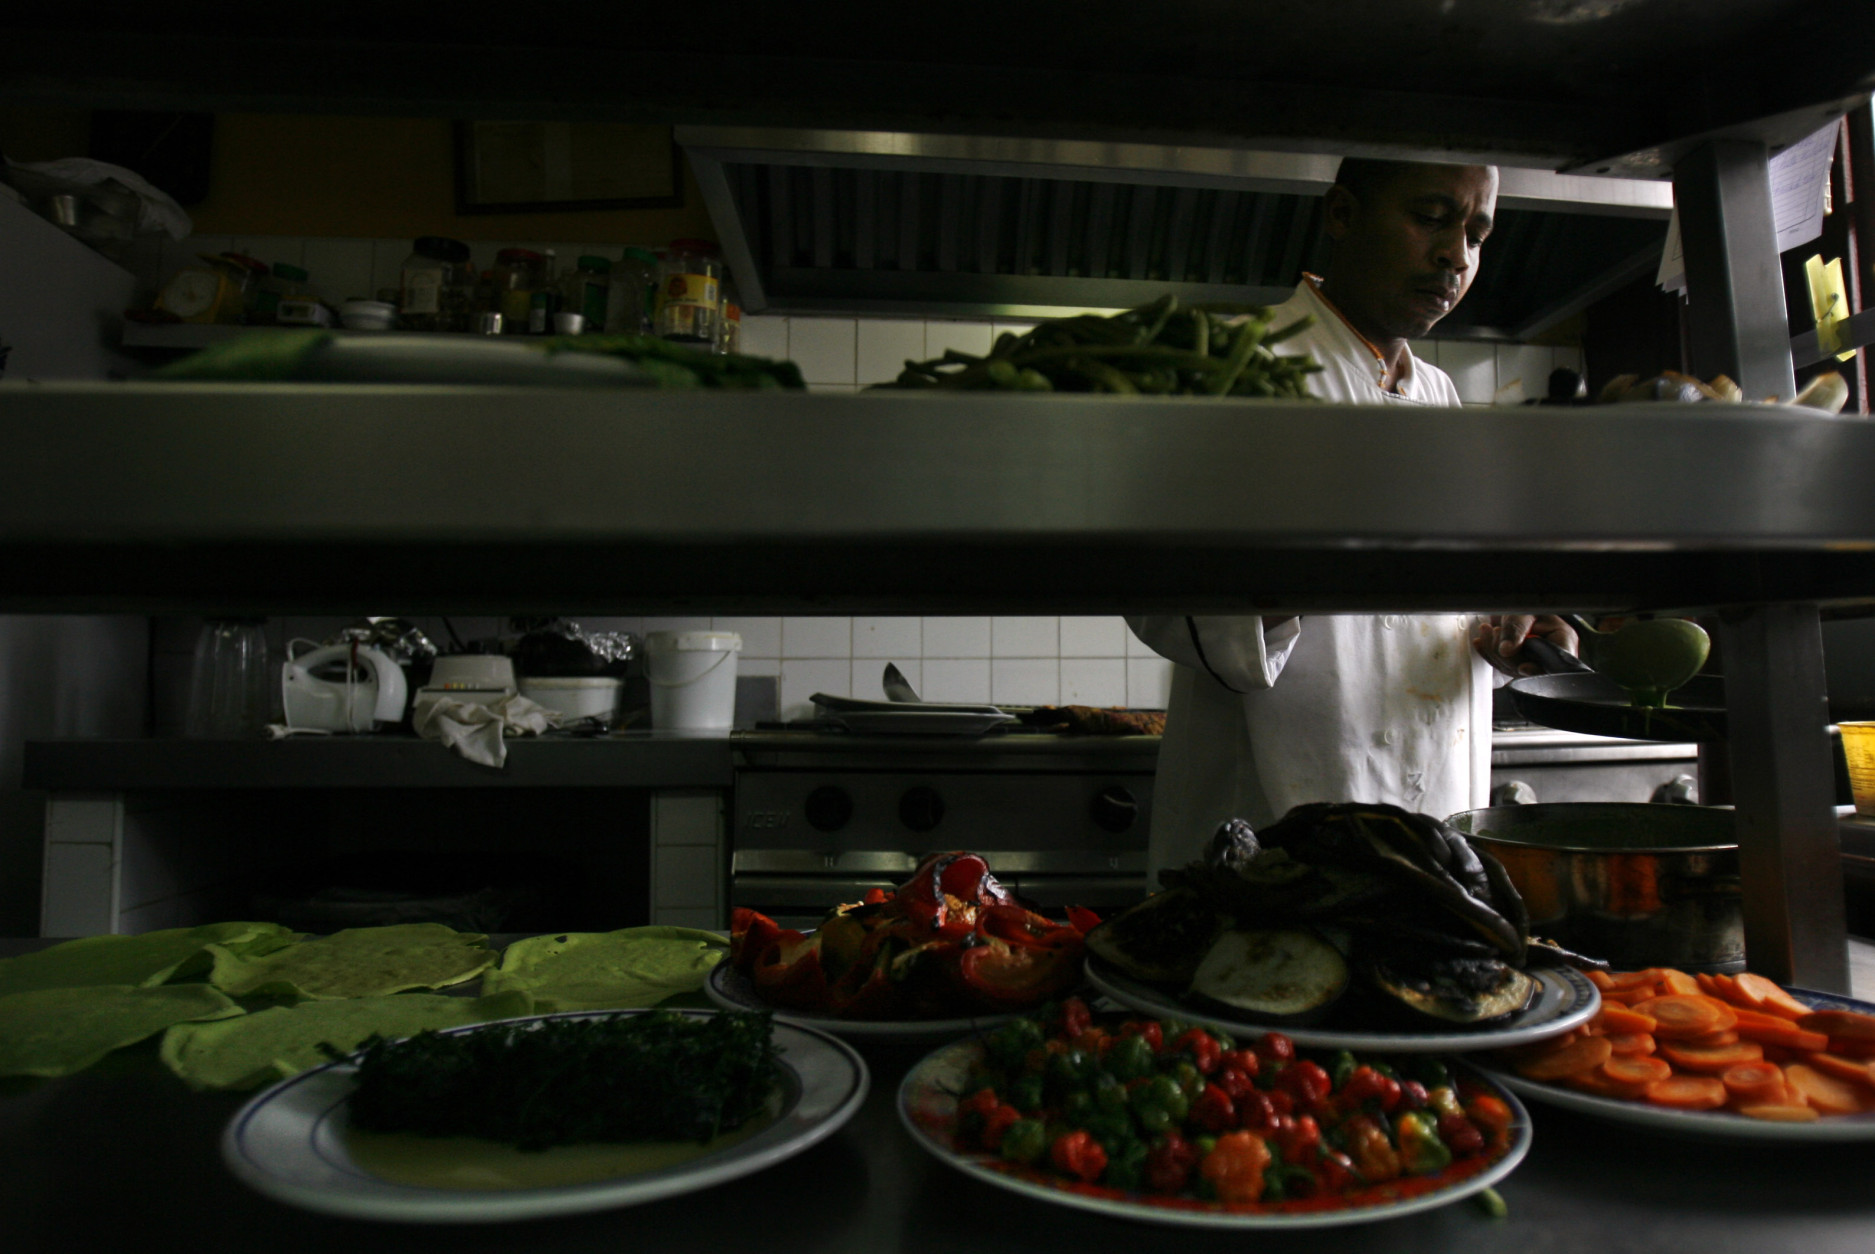 ** FOR STORY SLUGGED CUBA PALADARES **  A Cuban chef cooks at La Guarida, Havana's best known paladar, or private restaurant, in Havana, Monday, March 10, 2008.  (AP Photo/Javier Galeano)